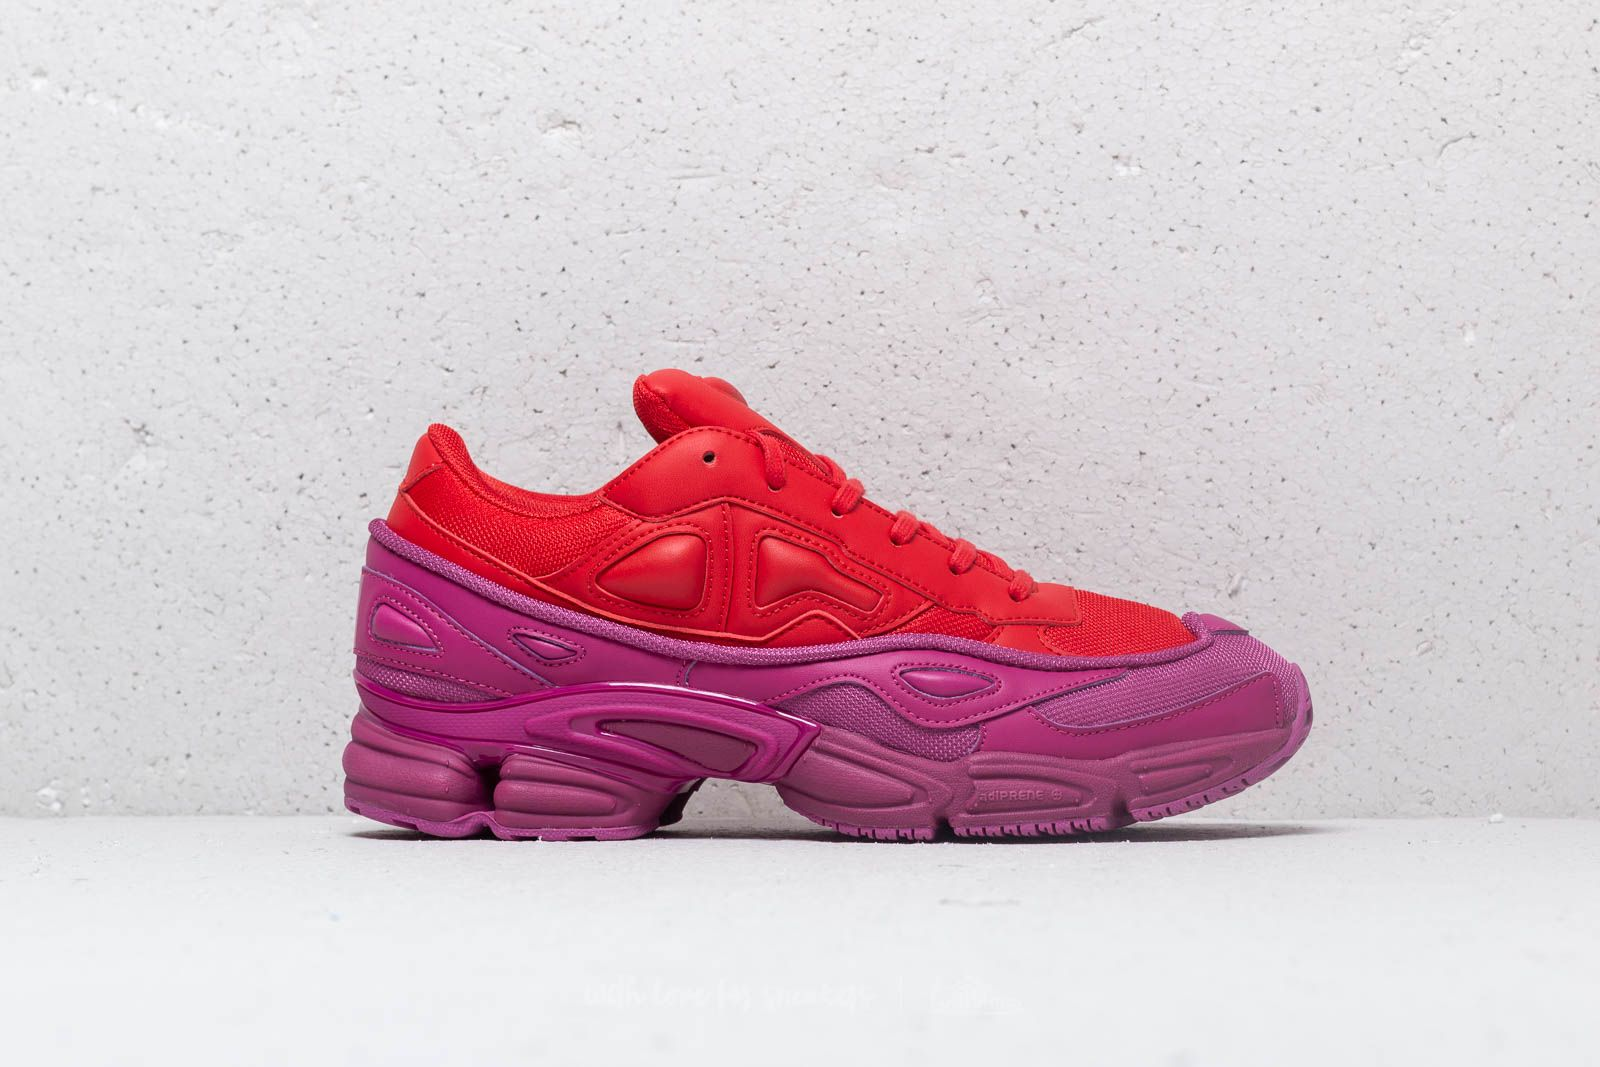 db0b5f672495 adidas x Raf Simons Ozweego Glory  Collegiate Red  Collegiate Red at a great  price